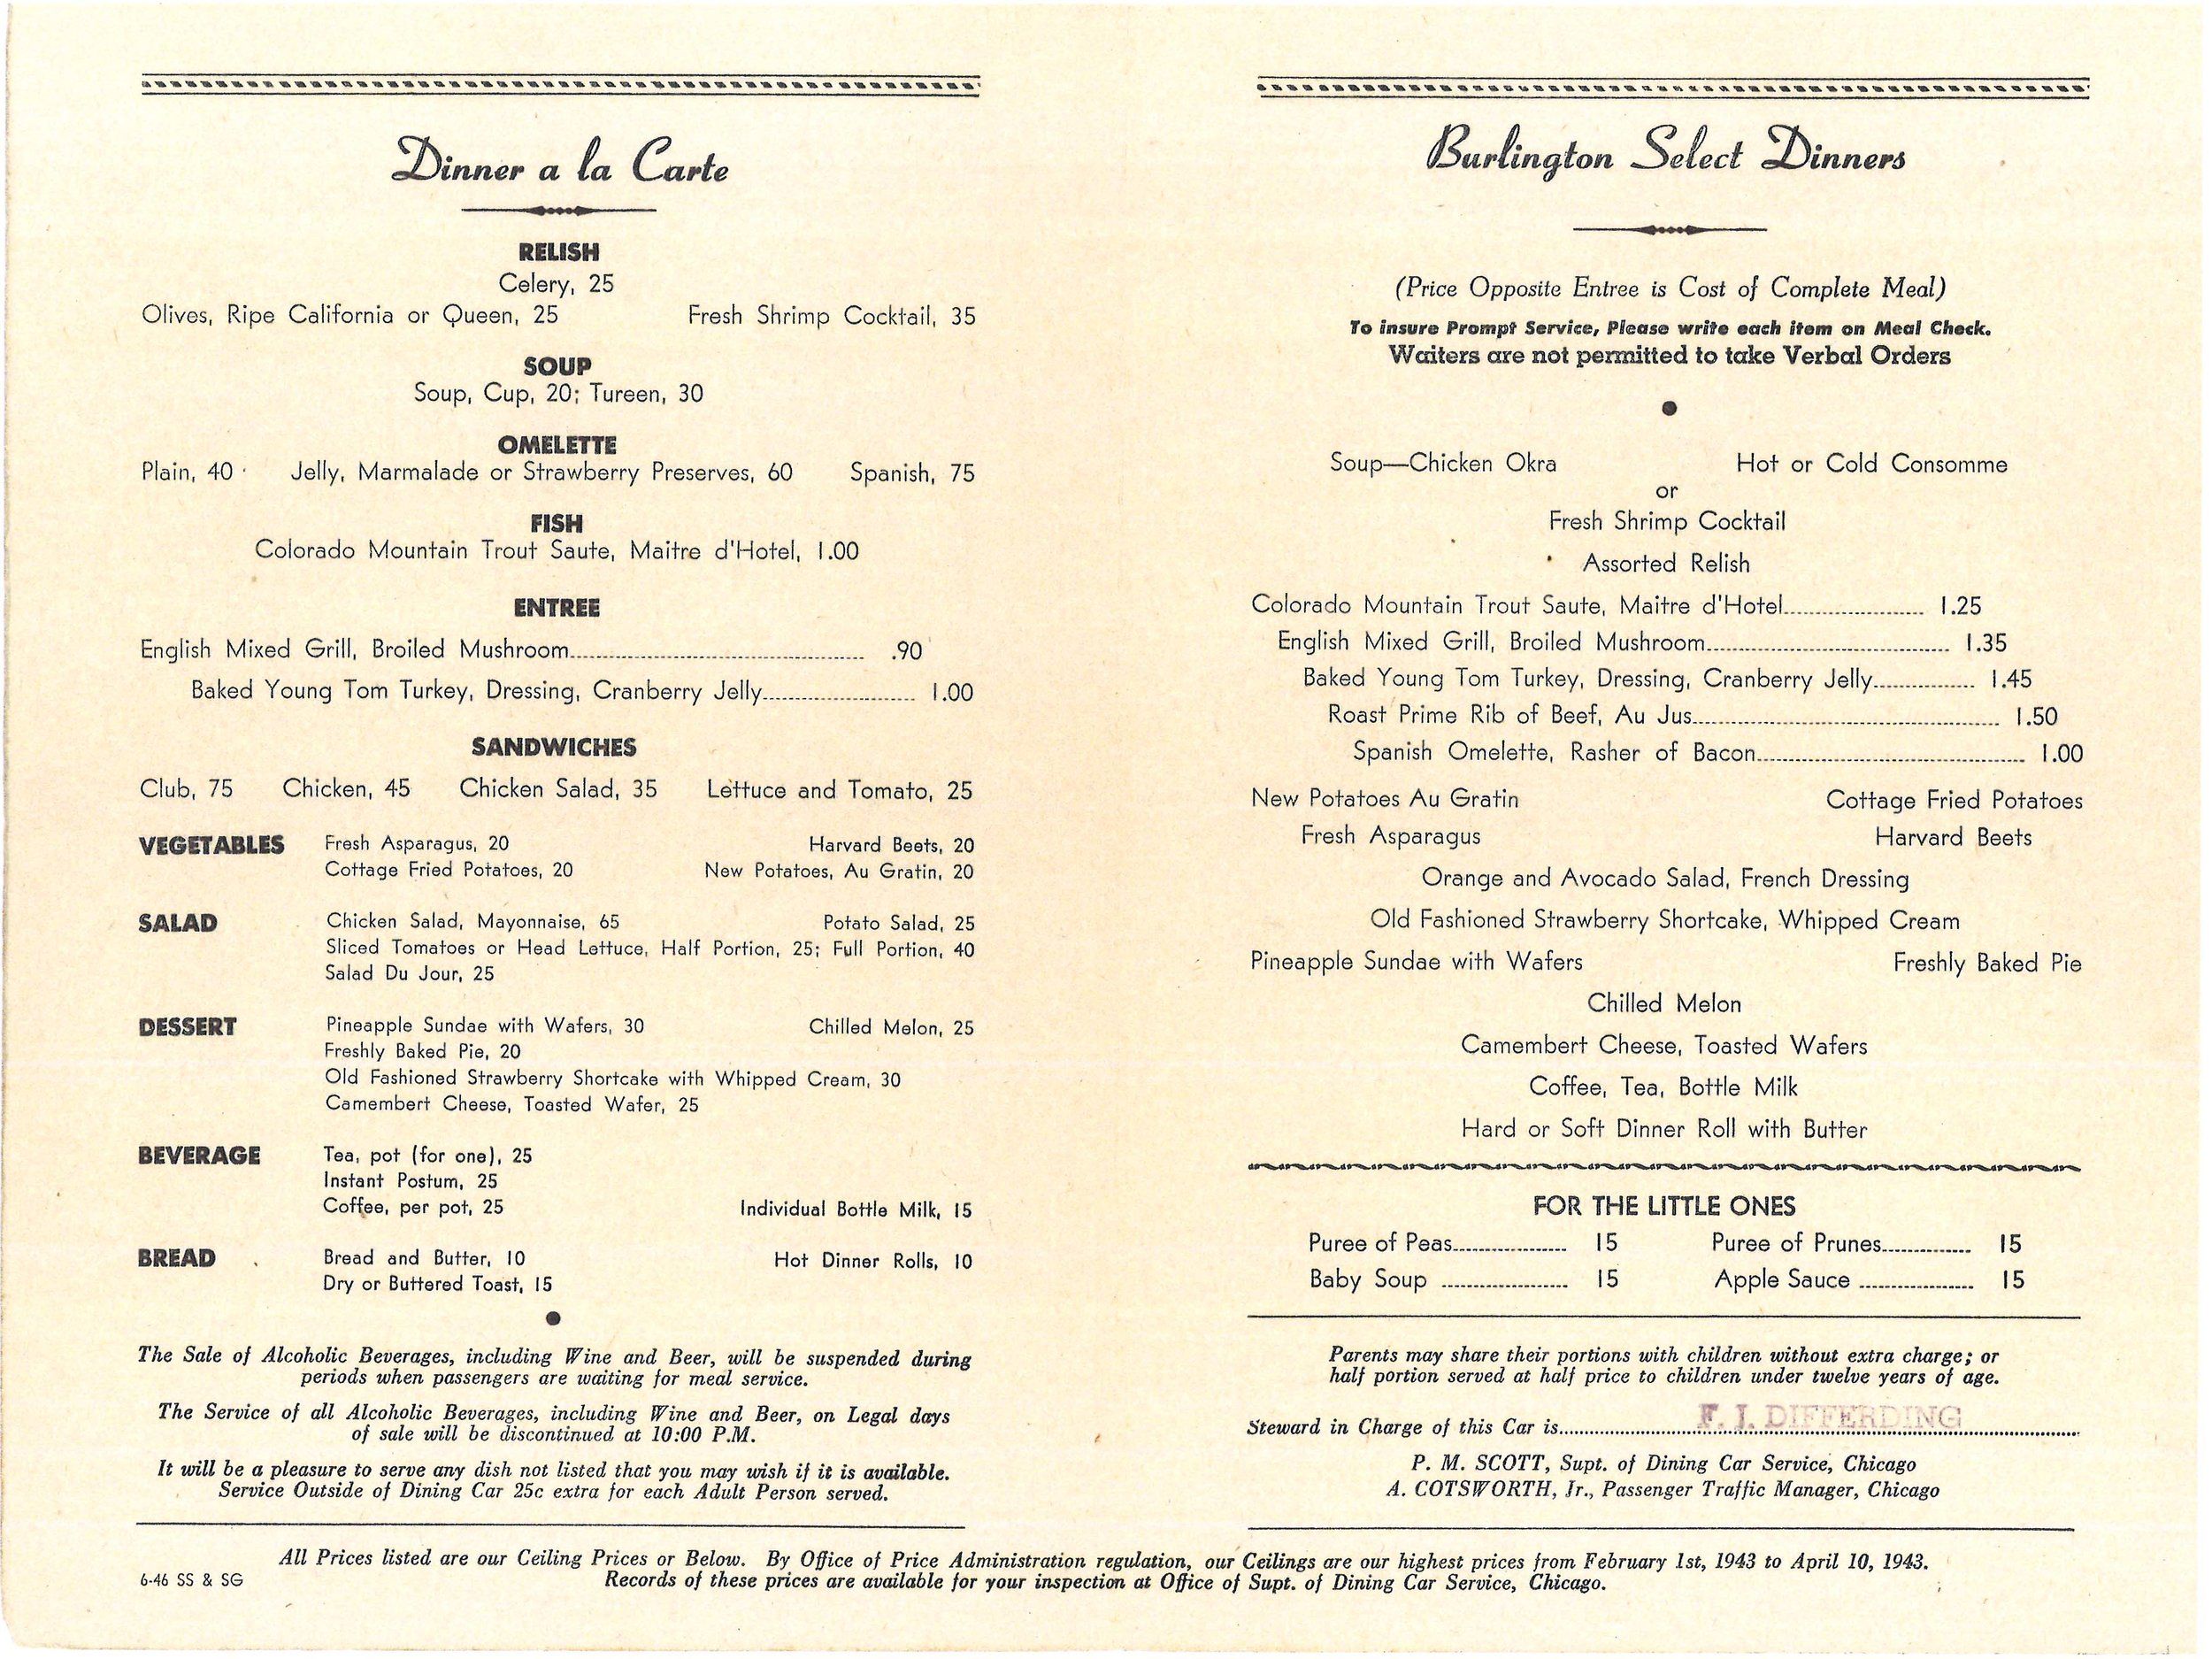 Burlington+Dinner+Menu+6-46 2.jpg